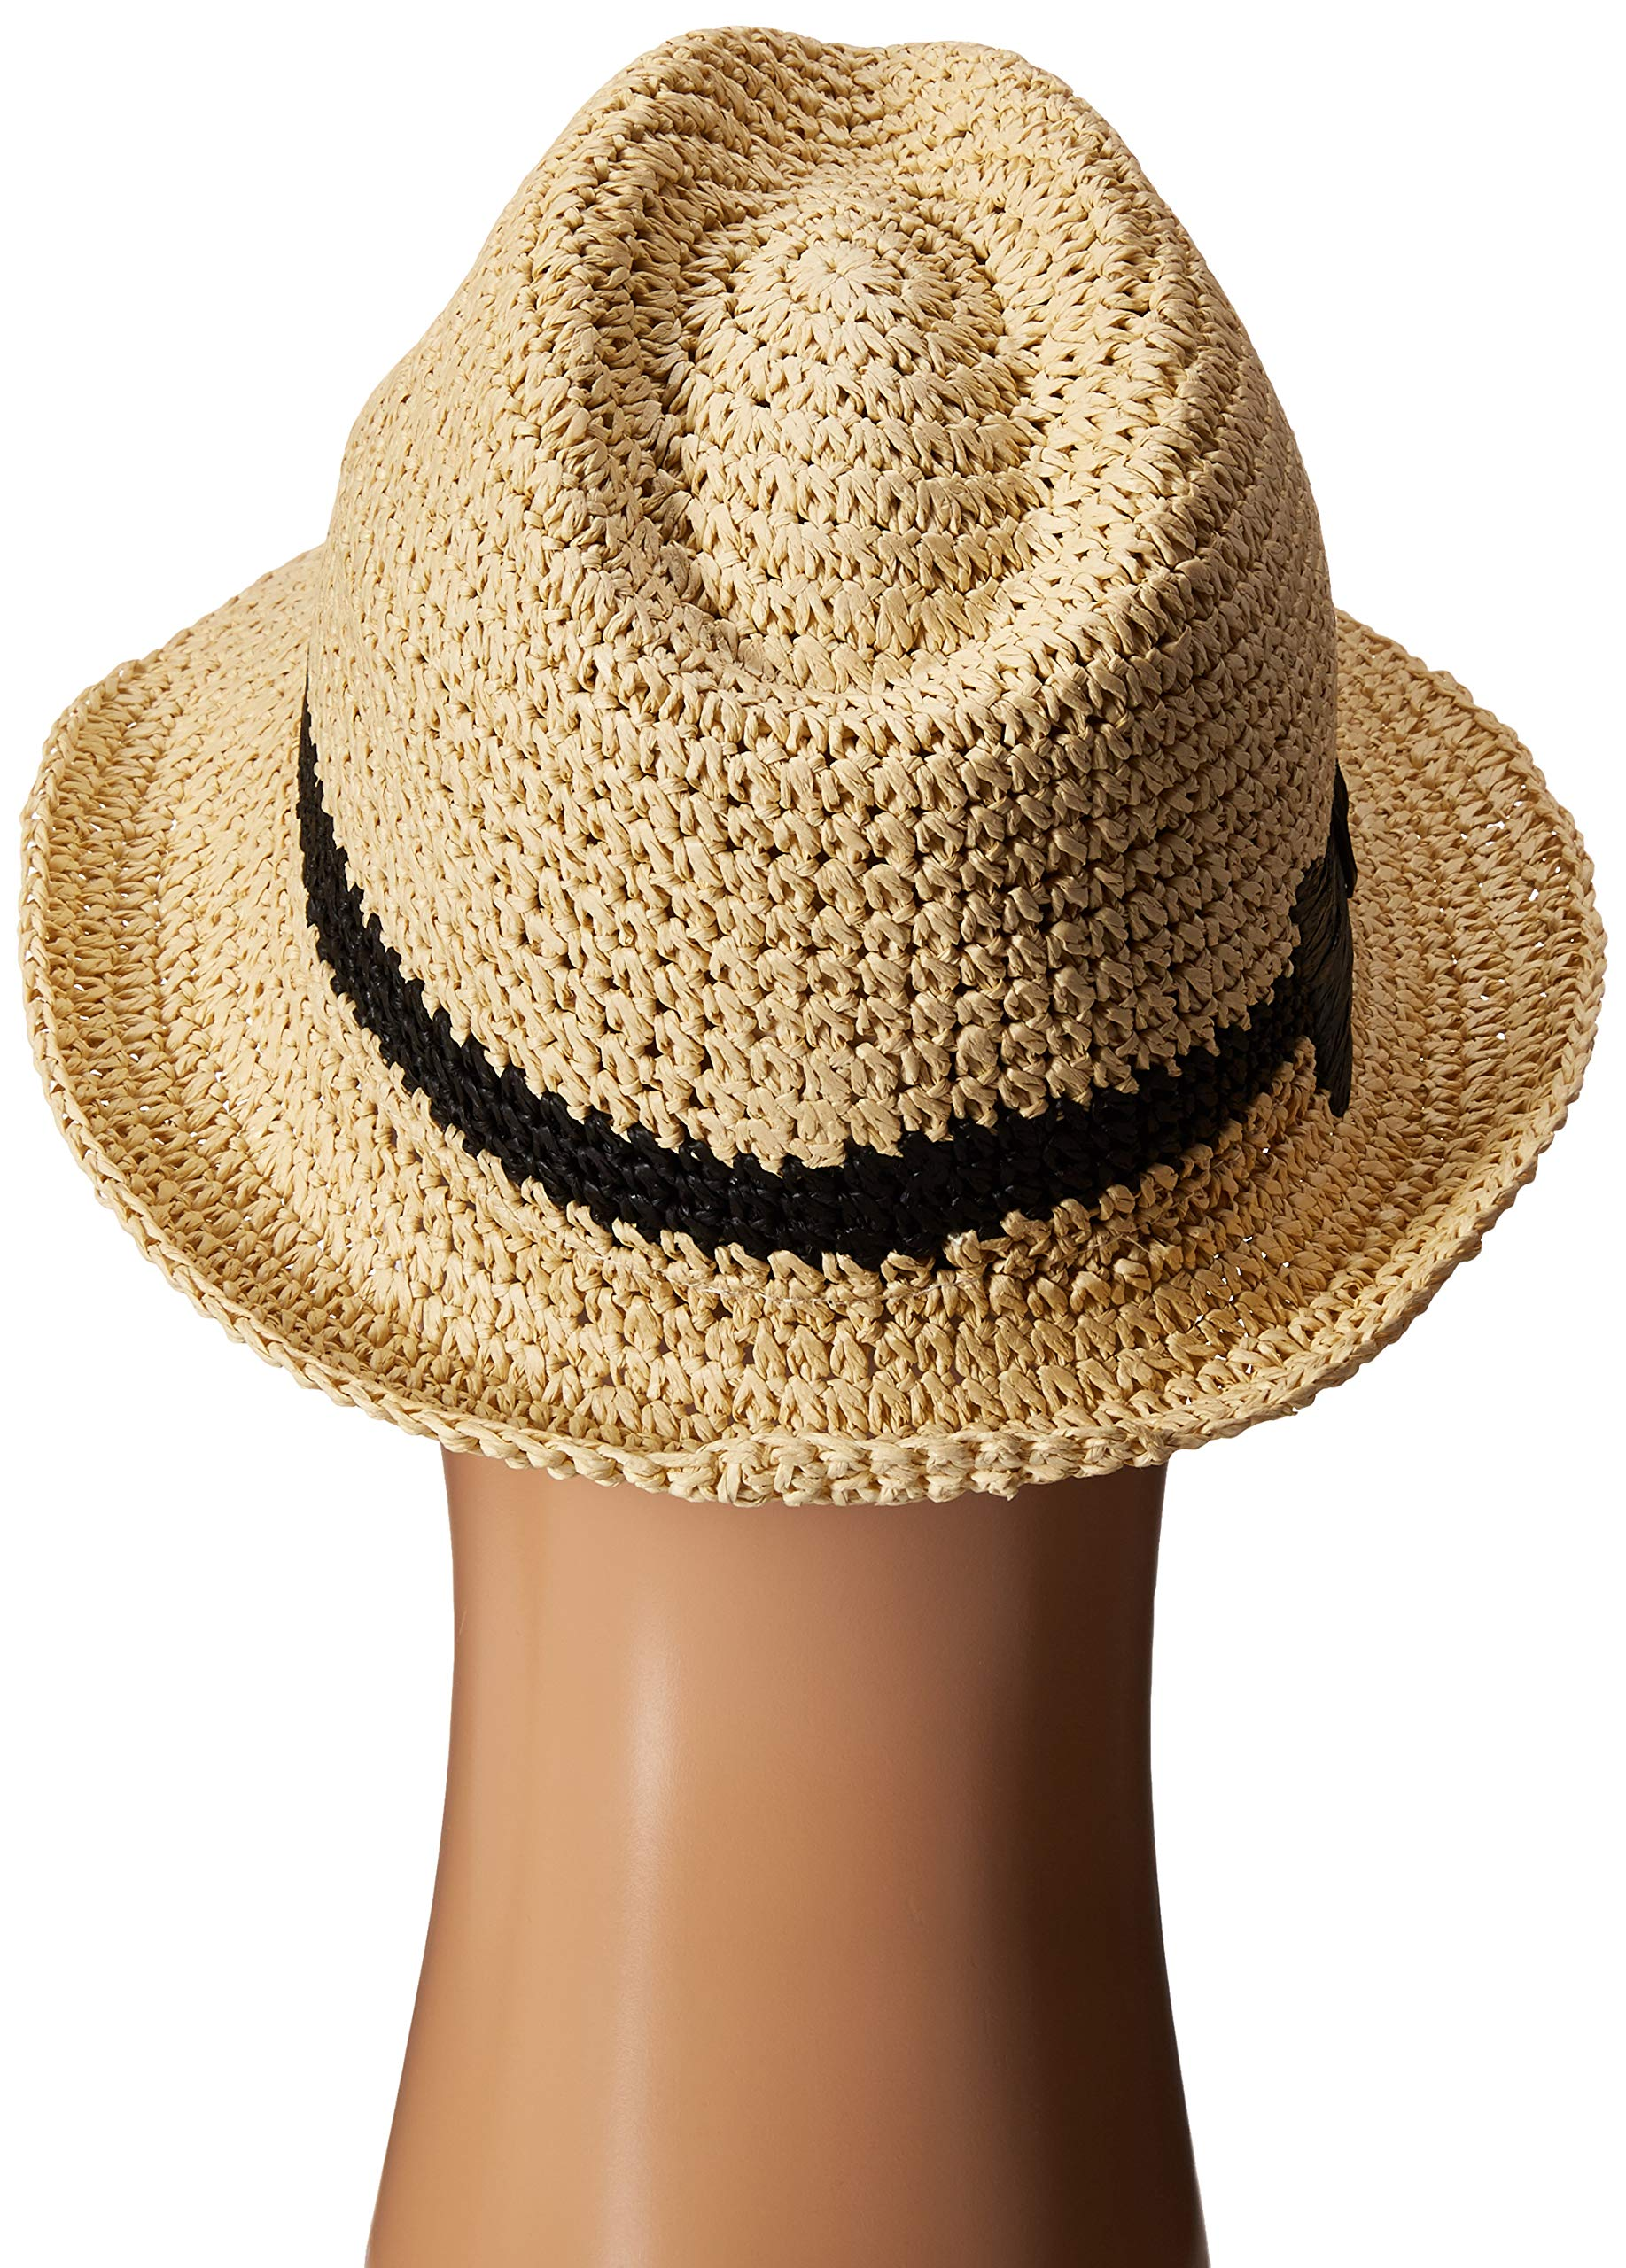 Kate Spade New York Women's Crochet Packable Fedora Natural/Black One Size by Kate Spade New York (Image #3)